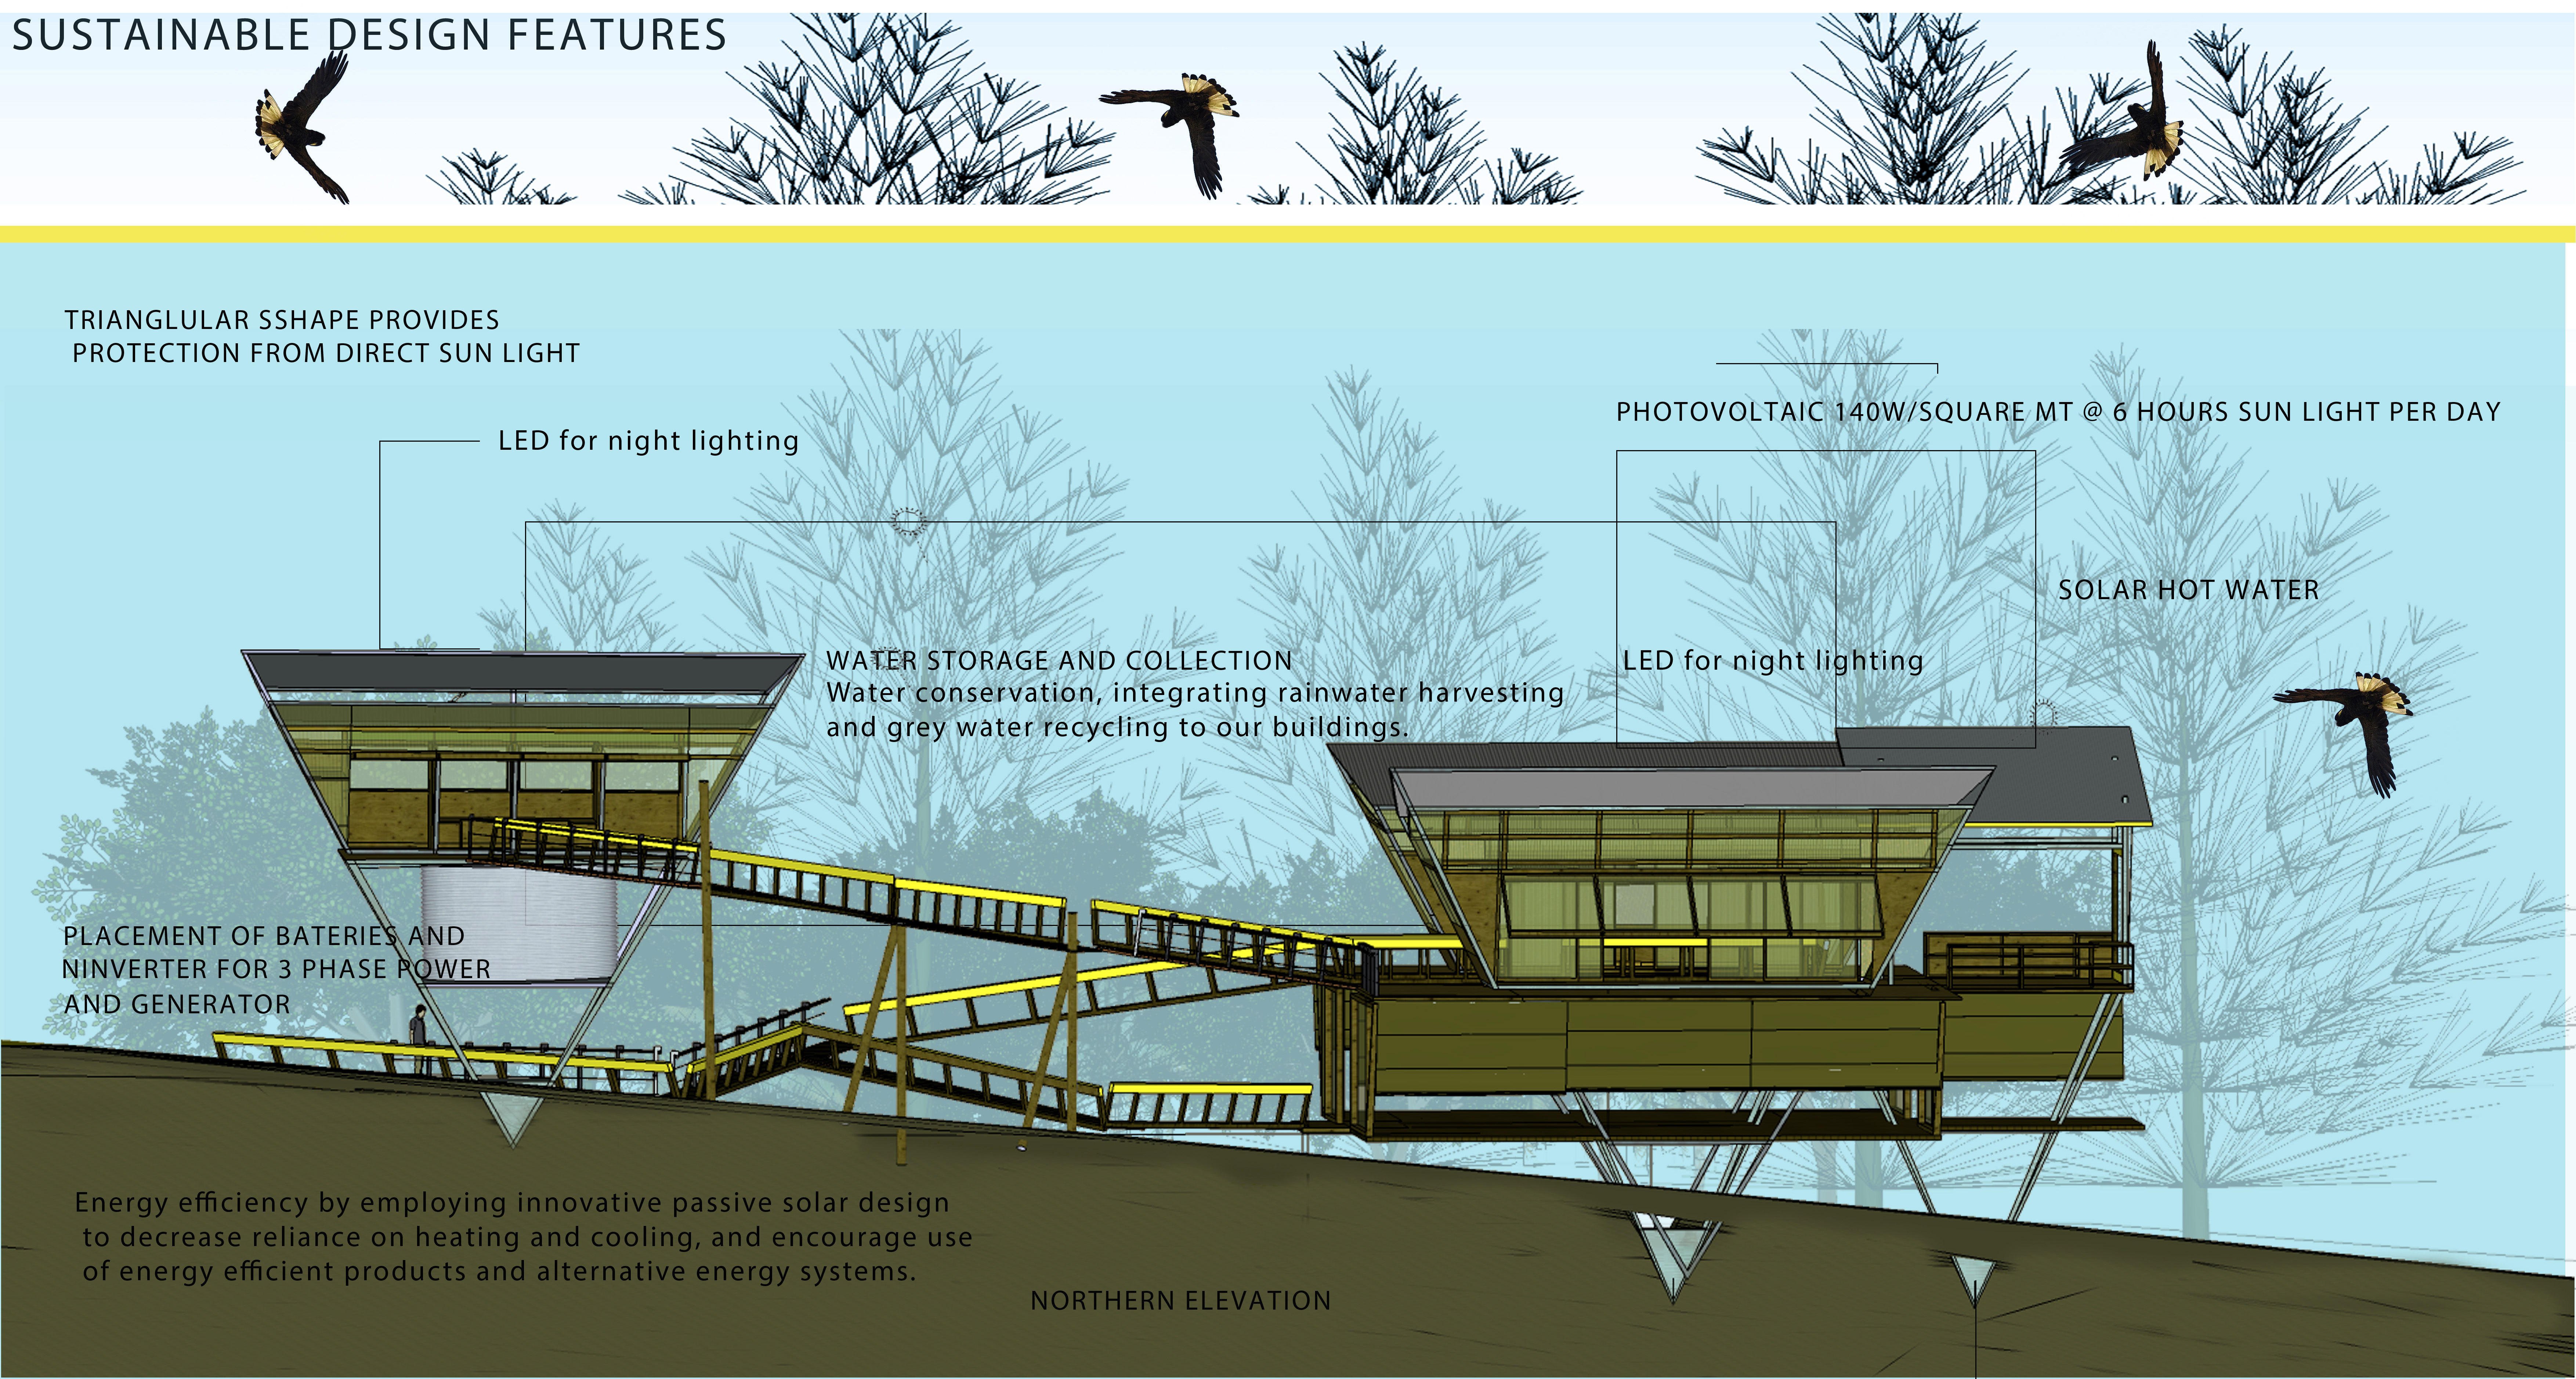 Sustainable Design Features